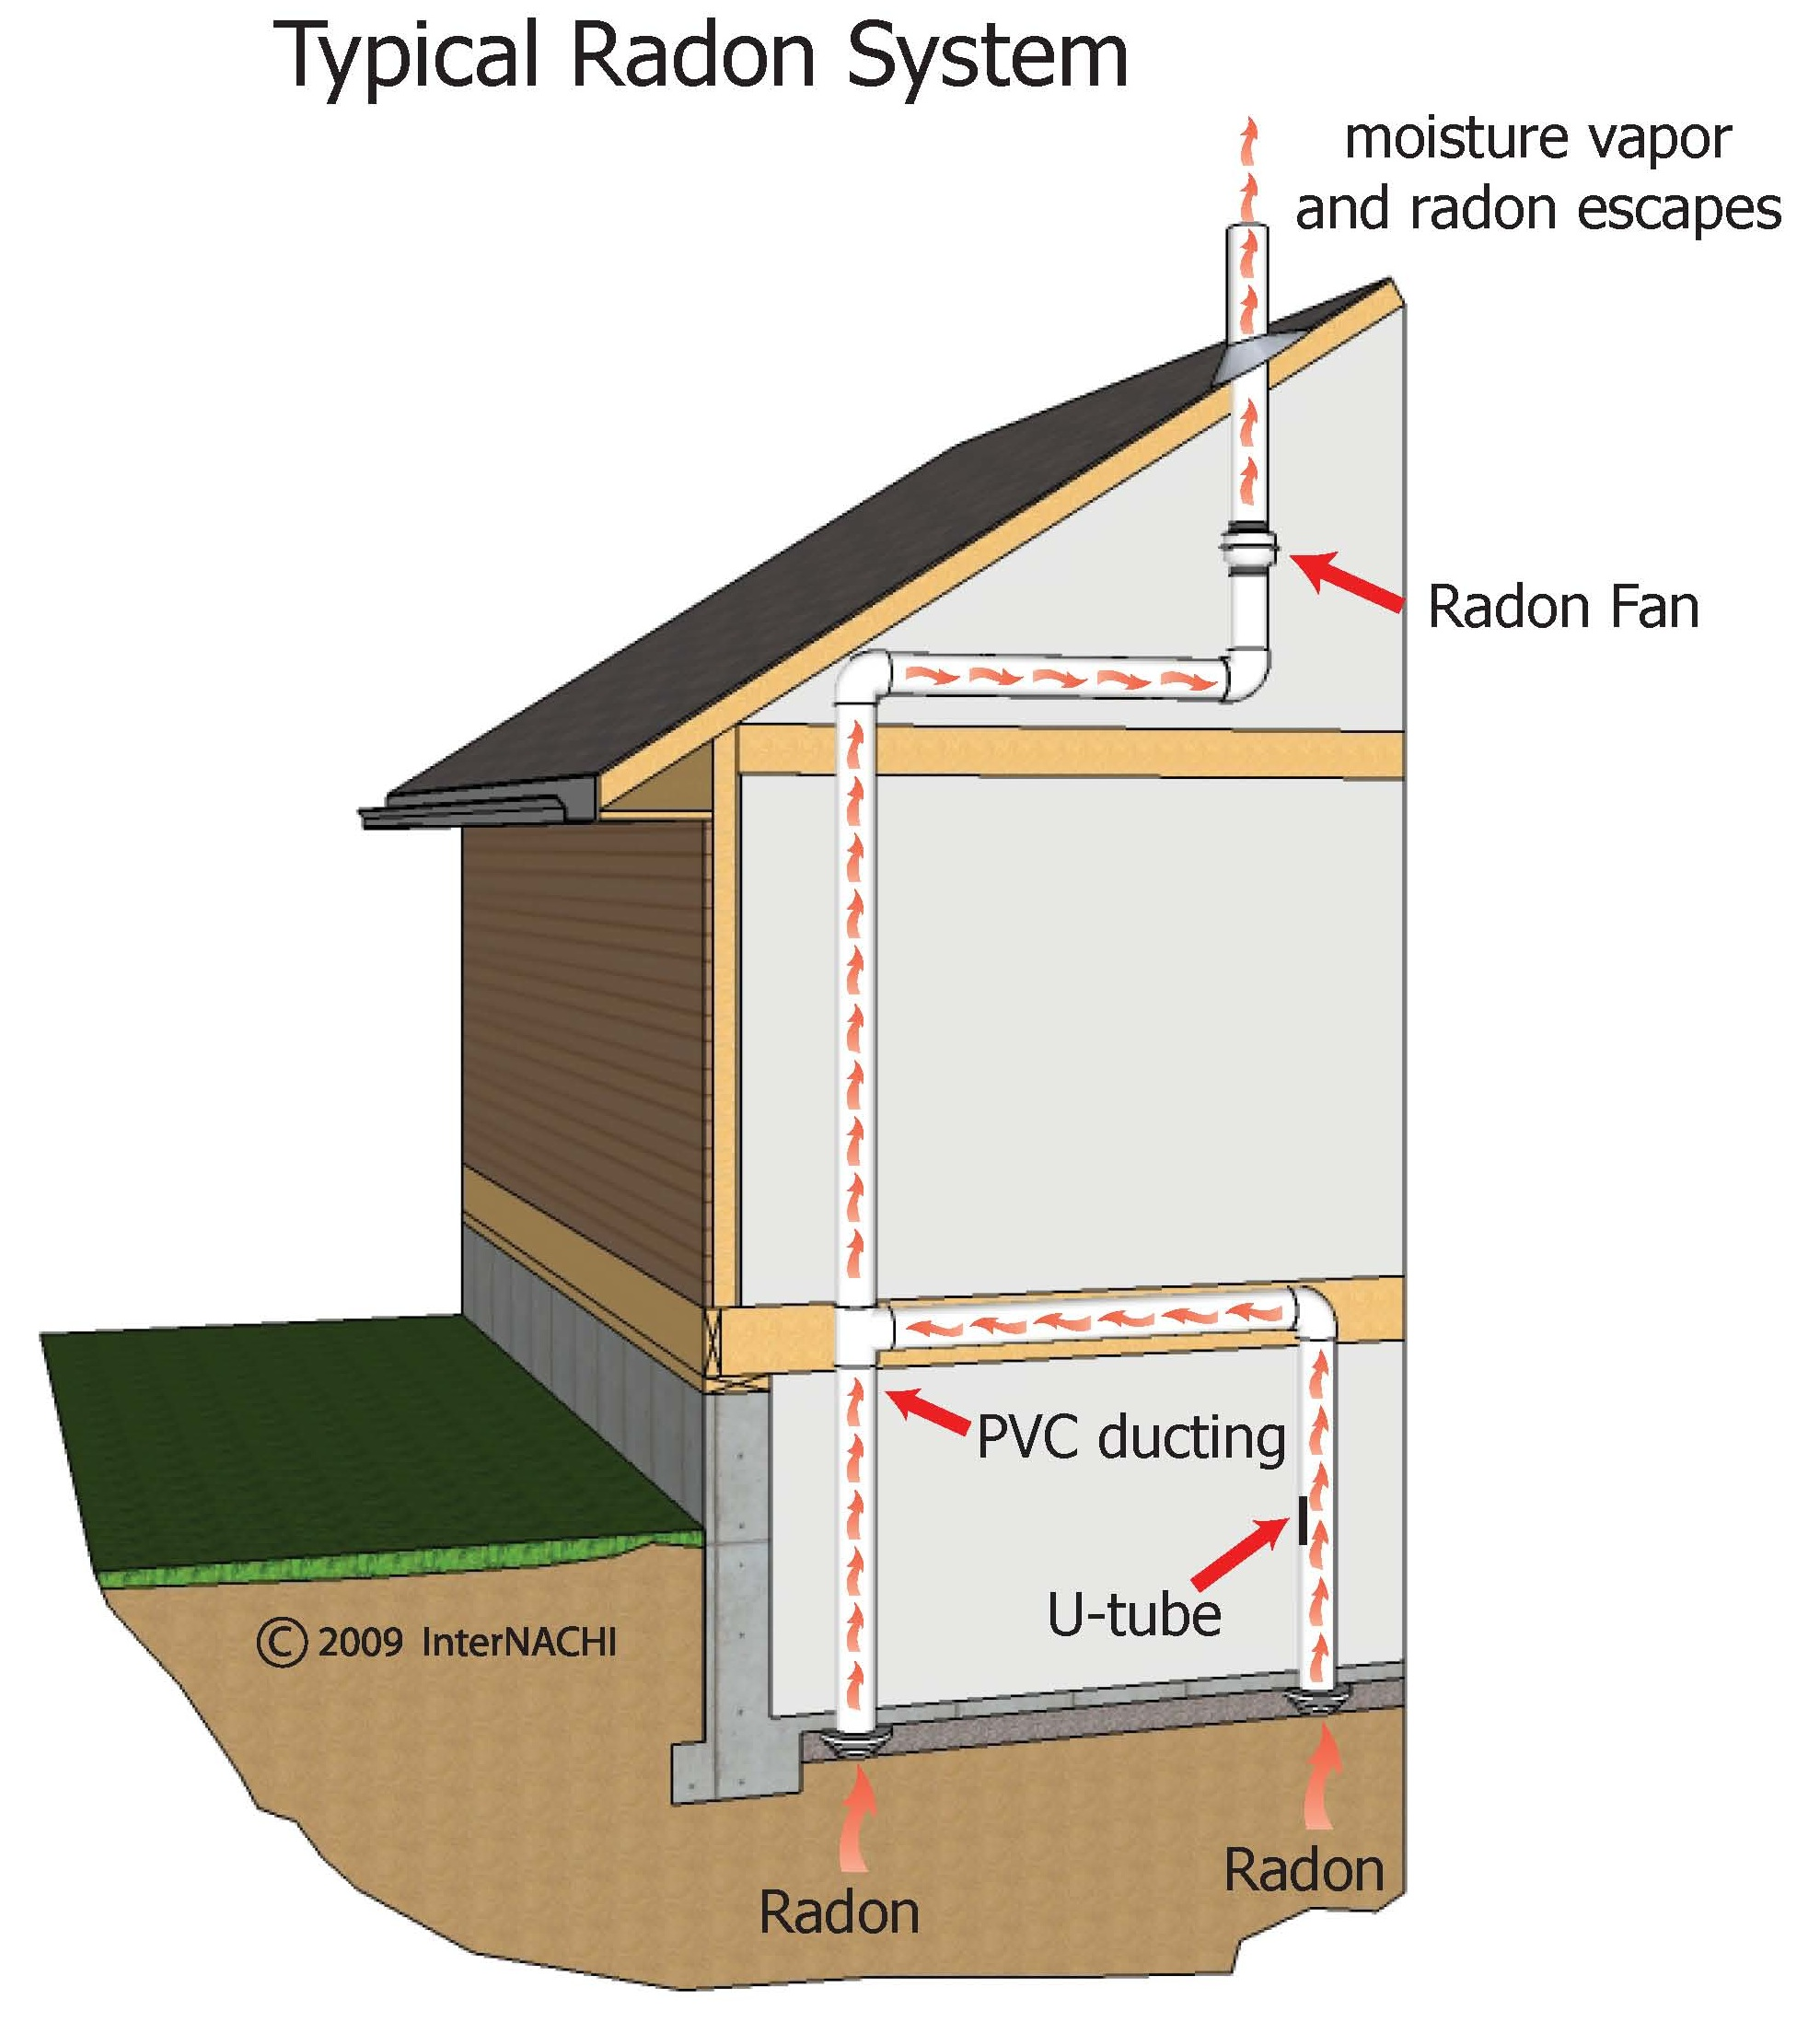 Radon radon test homeguard inspections™ greater wasatch front radian diagram at bayanpartner.co